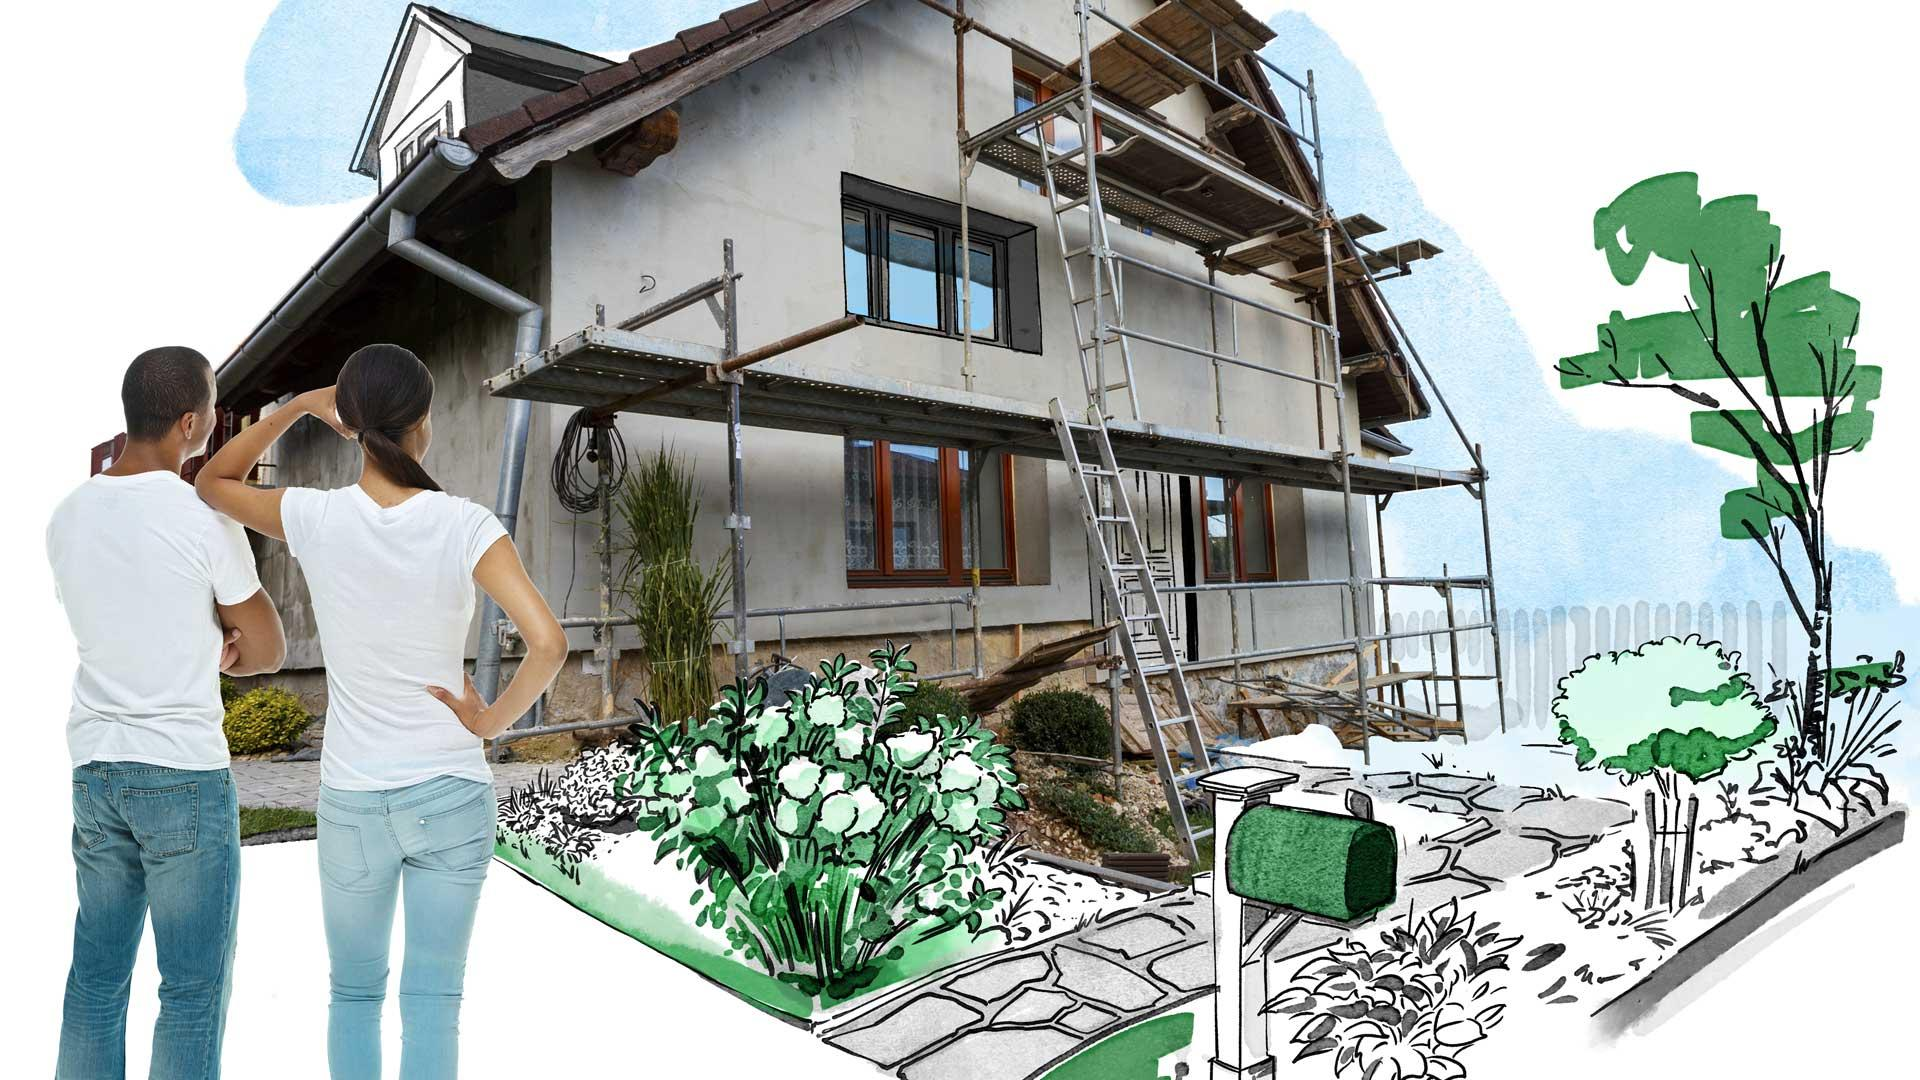 Wiring Outside House Diagrams For Dummies Home Renovation Without Aggravation Consumer Reports Lights Phone